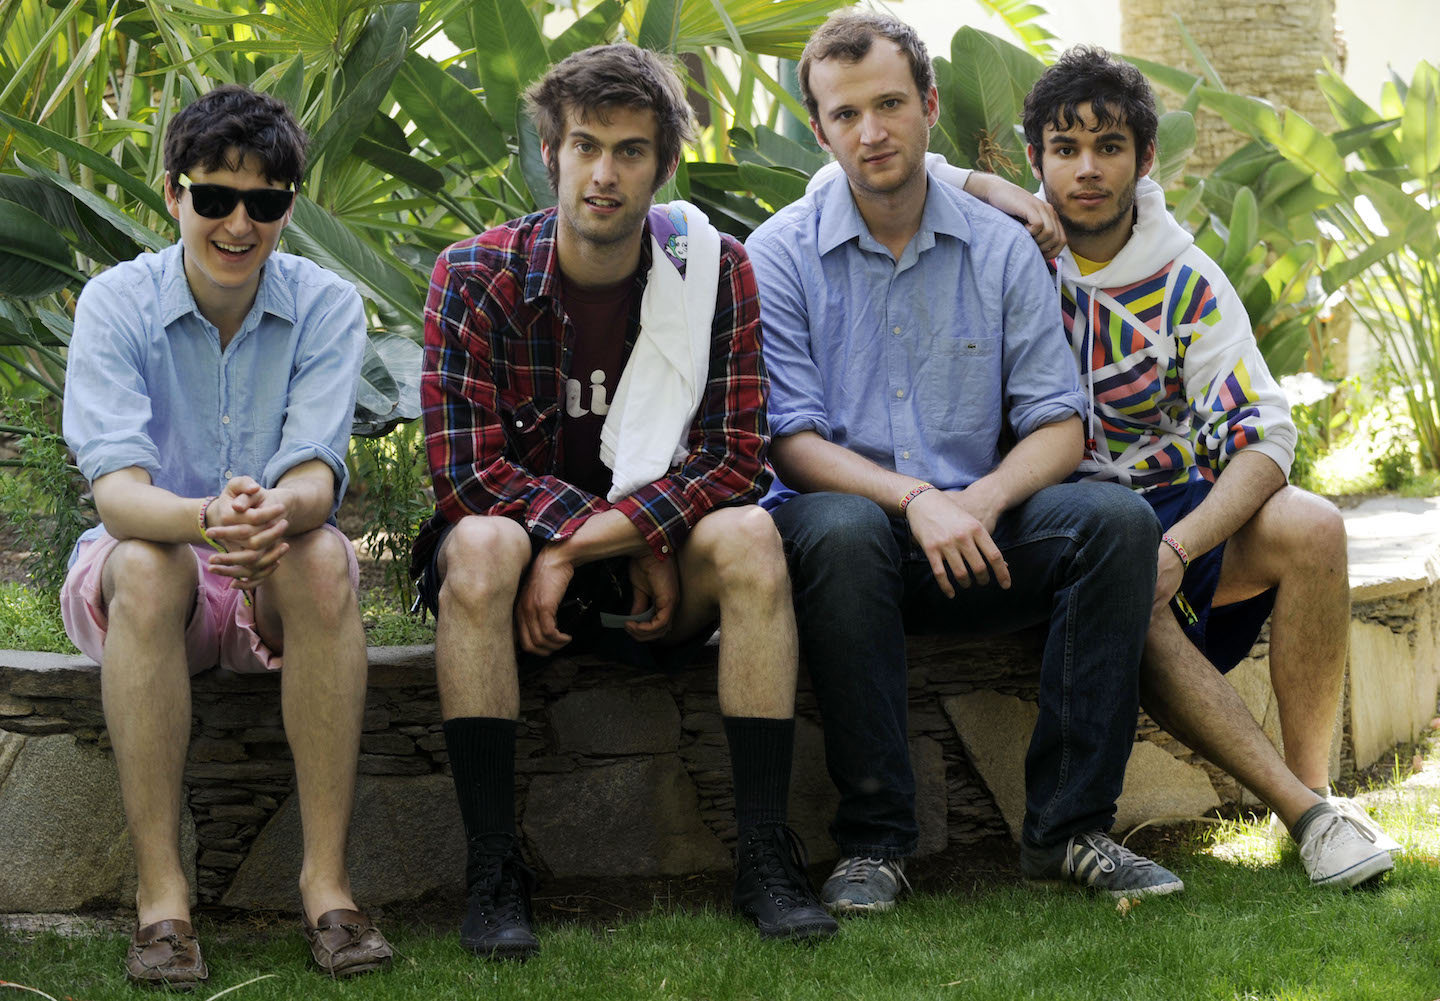 Ezra Koenig, Chris Tomson, Chris Baio and Rostam Batmanglij of the band Vampire Weekend pose for a portrait backstage during the first day of the Coachella Valley Music and Arts Festival in Indio, Calif., Friday, April 25, 2008.